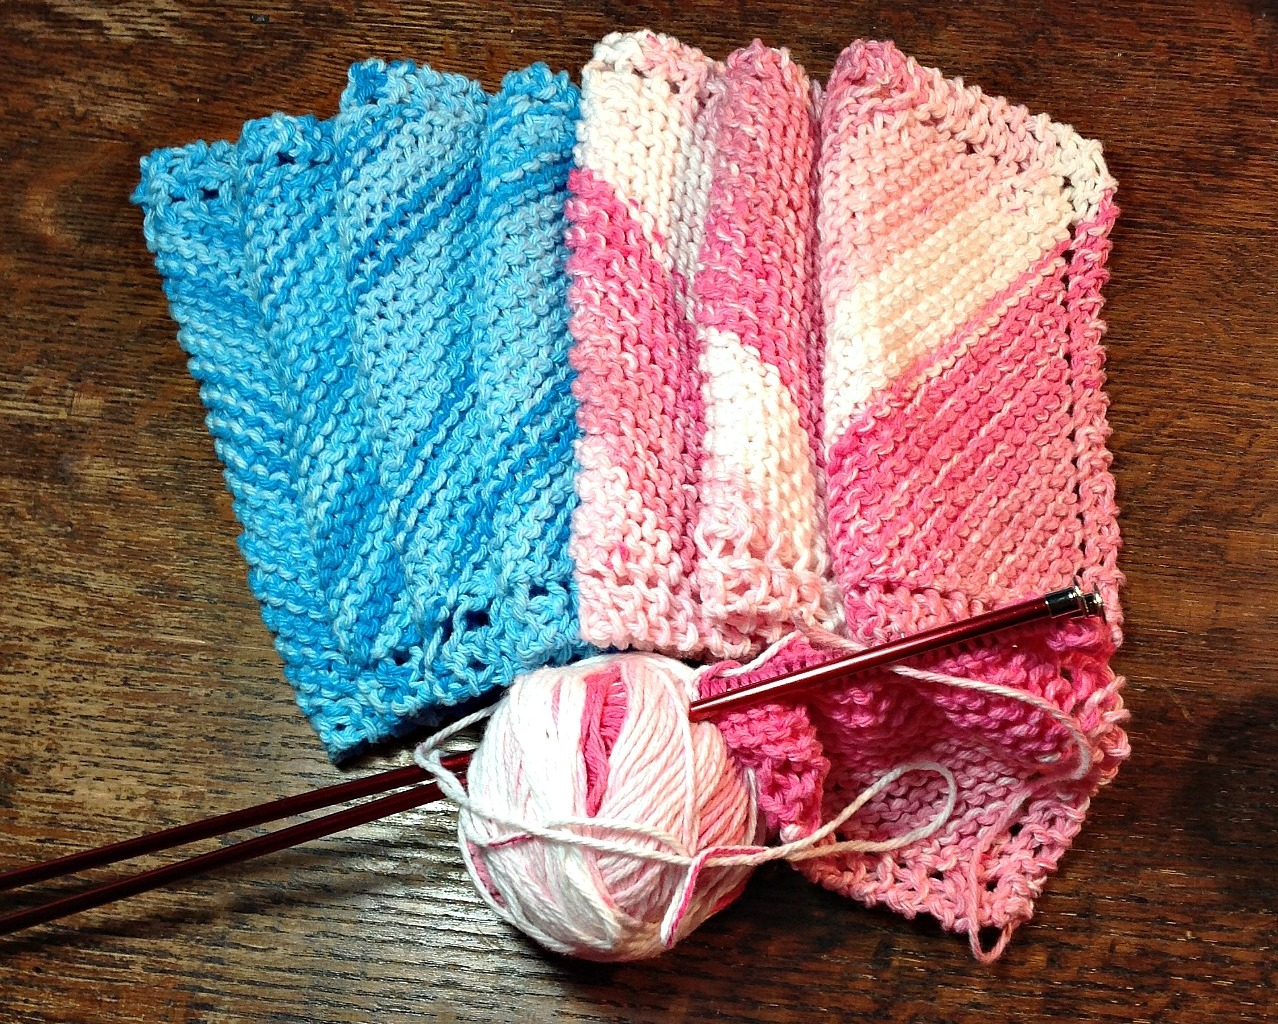 Jane's Fabric & Quilts – Knit Washcloths